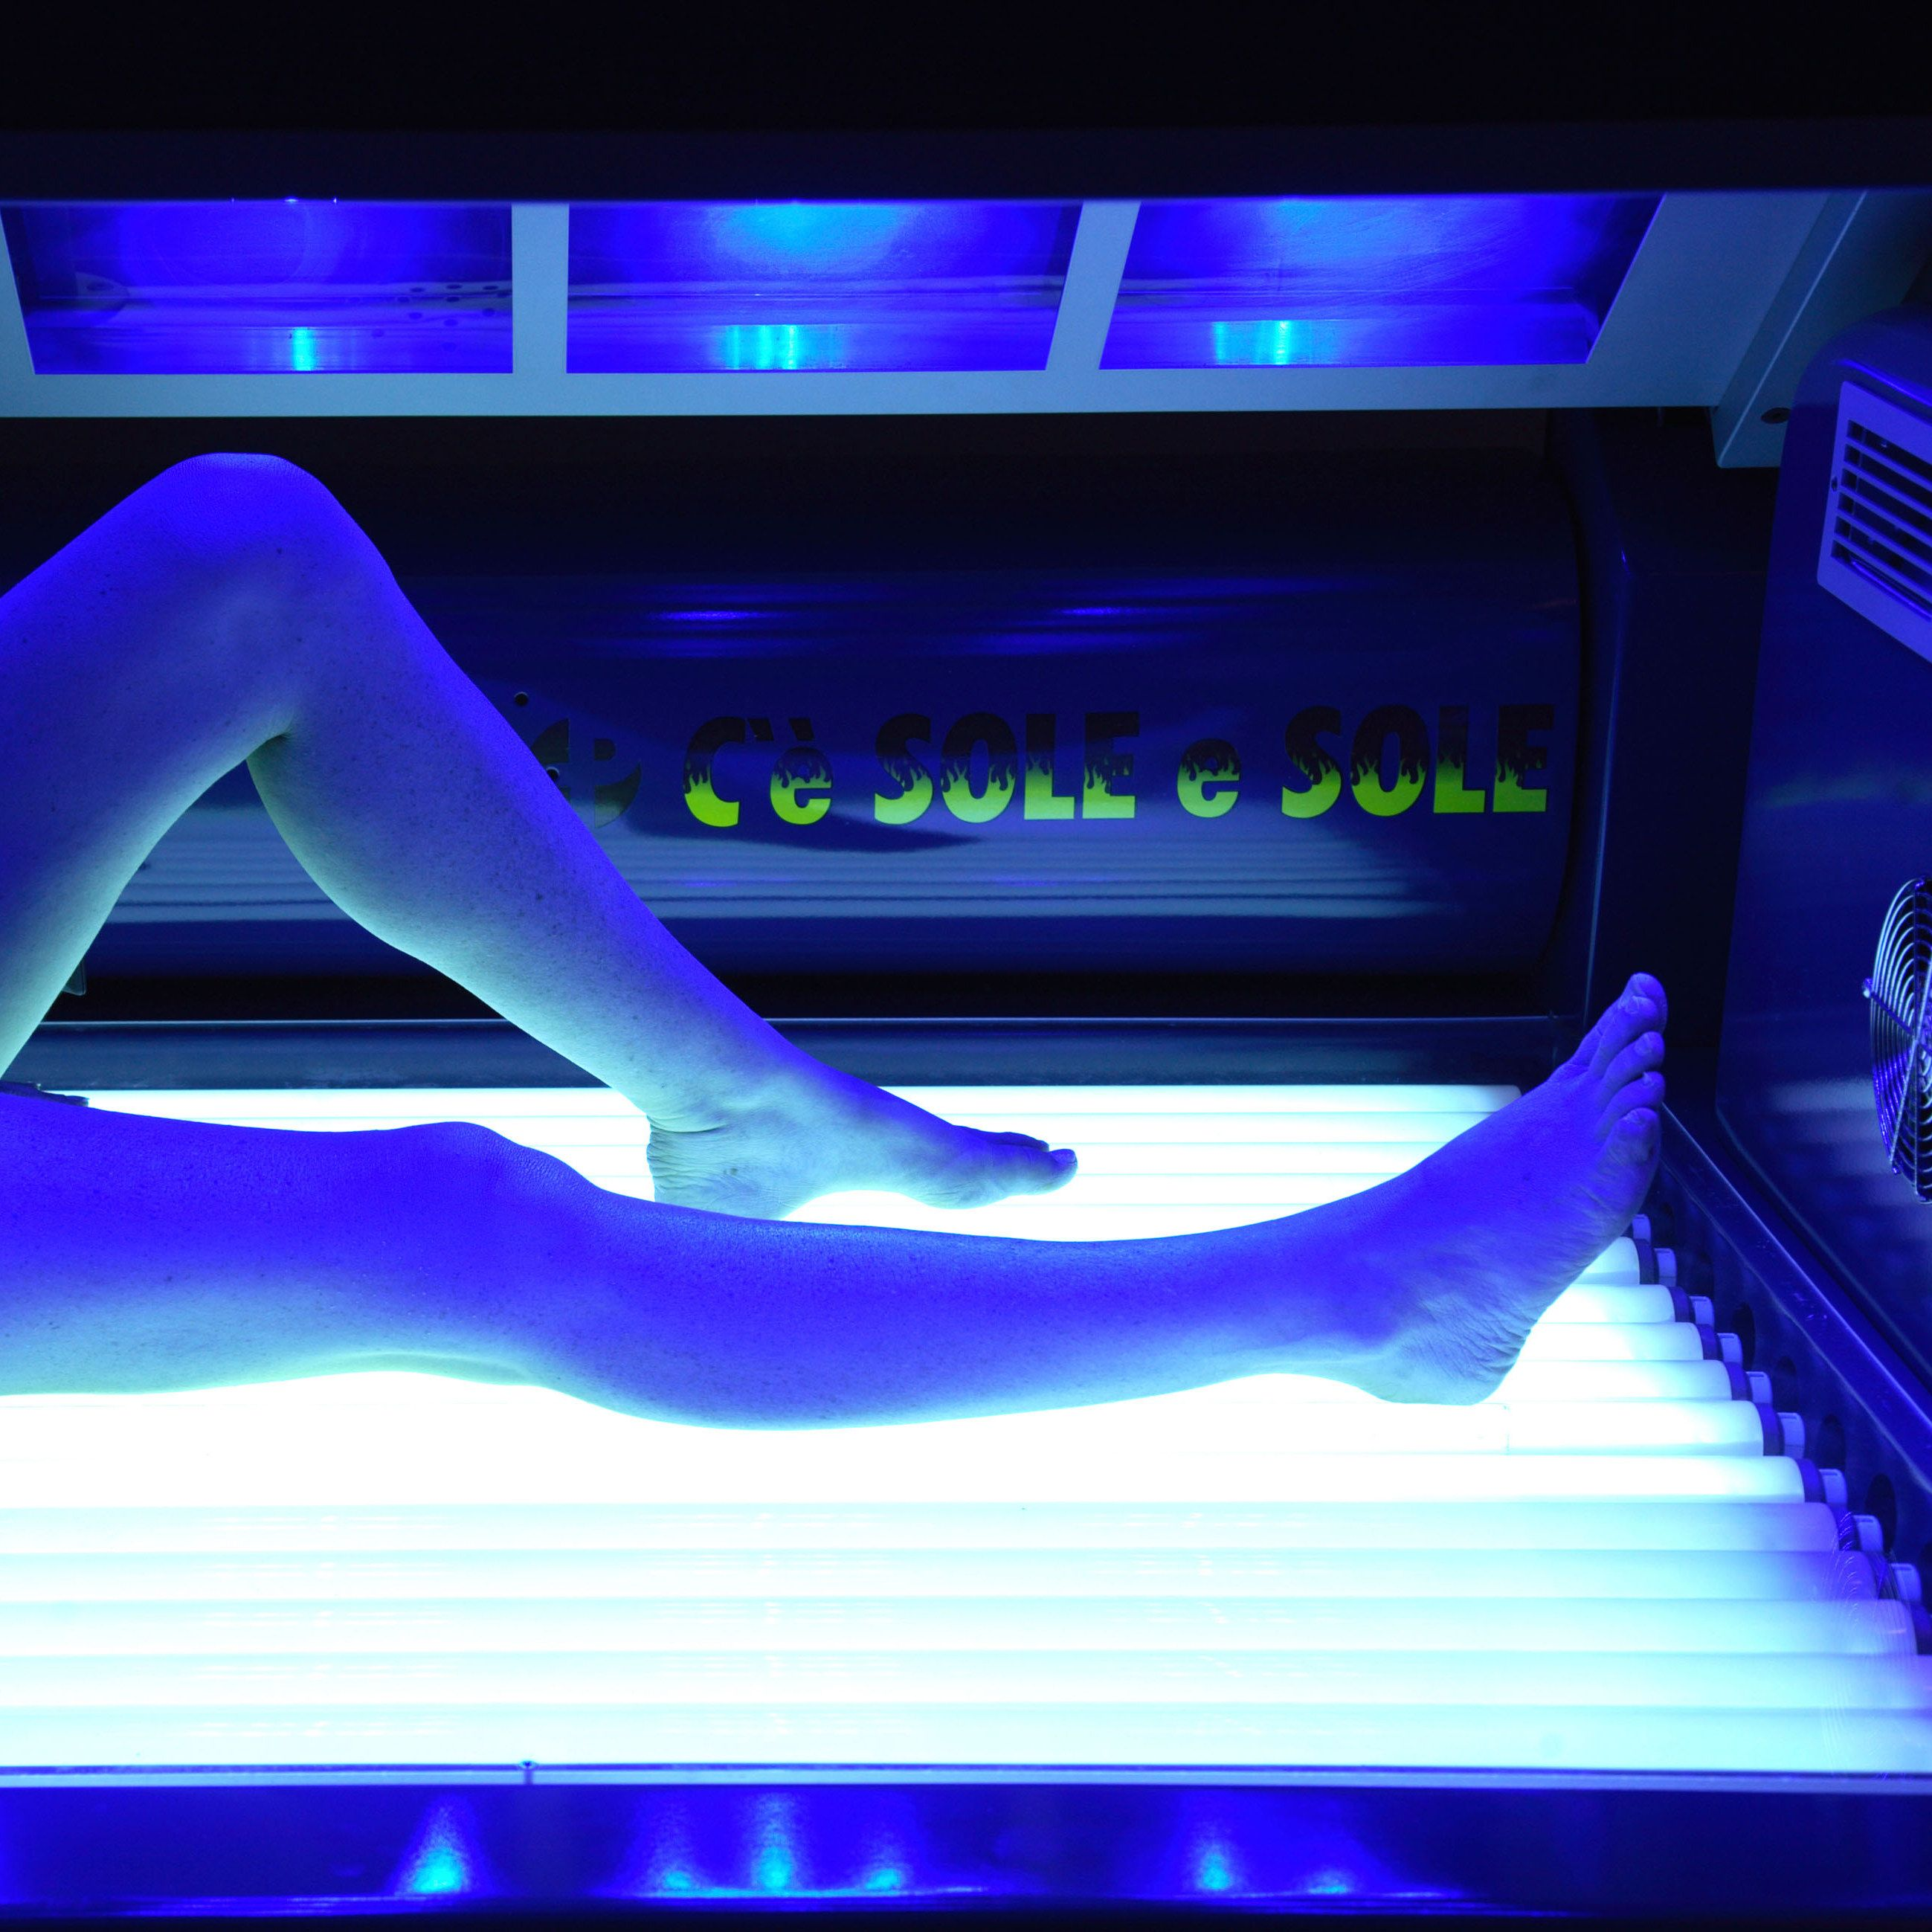 Why You Should Never Ever Indoor Tan Indoor tanning